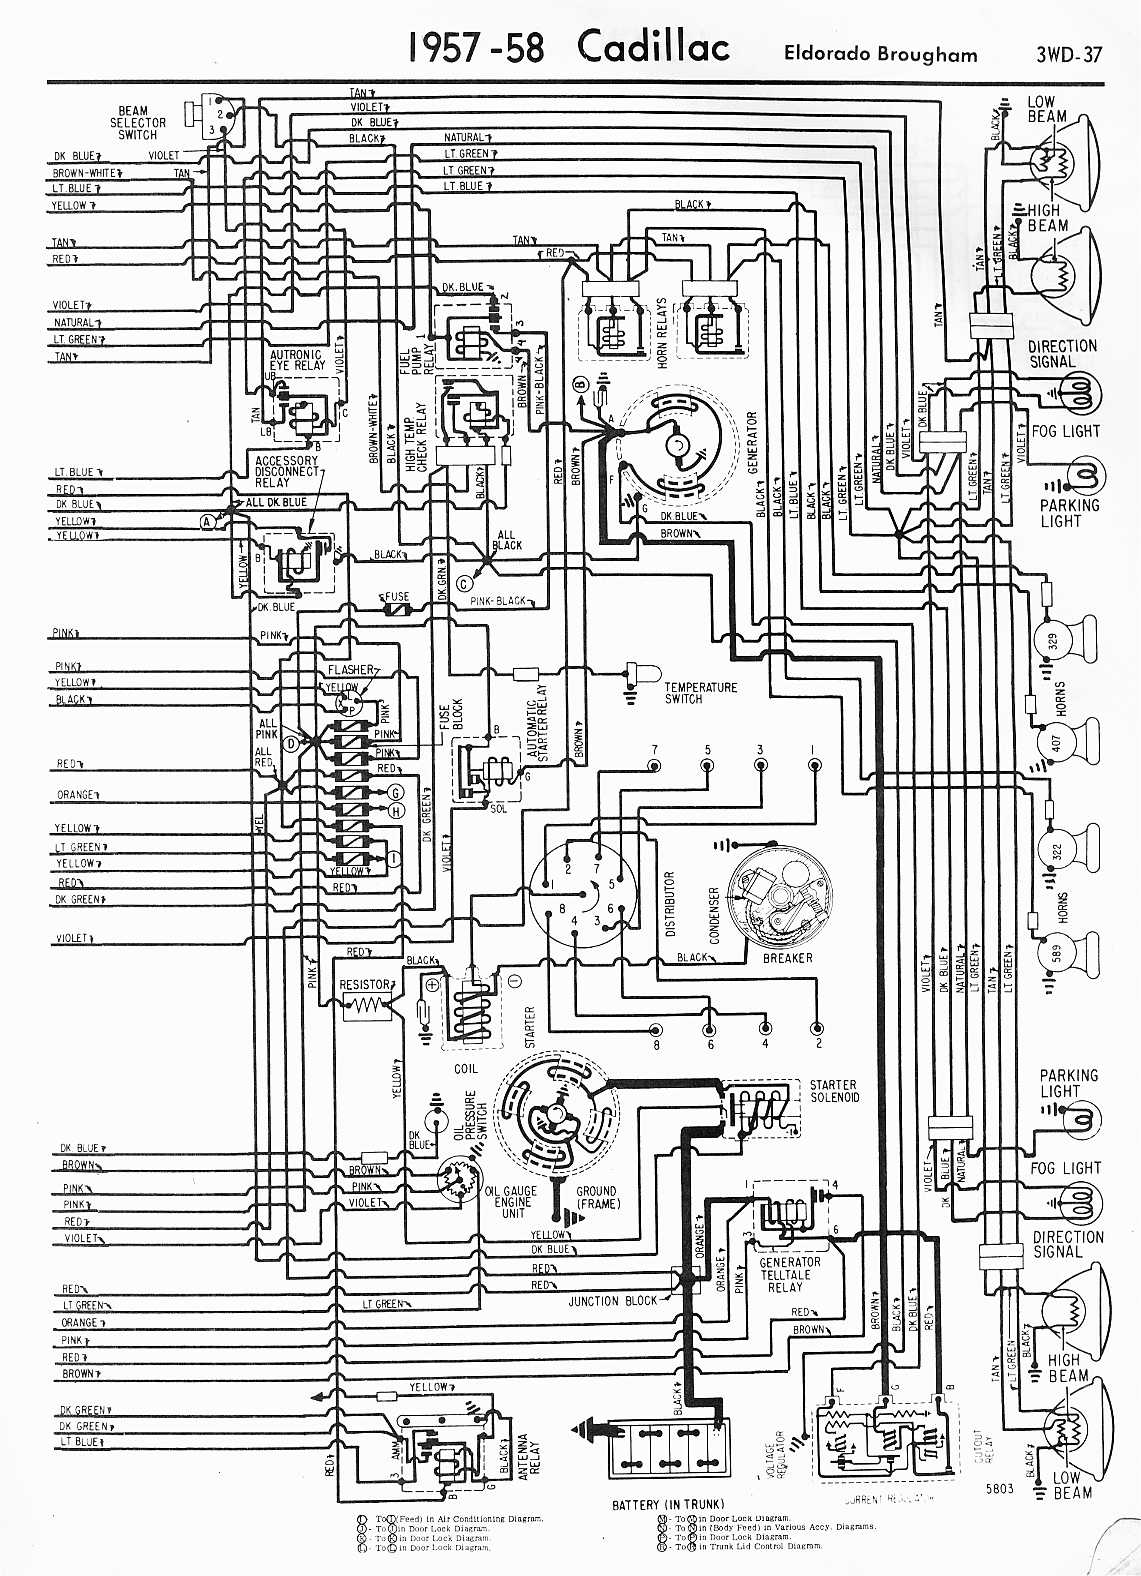 cadillac wiring diagrams 1957 1965 1979 Ford F150 Wiring Diagram  1979 Jeep J10 Wiring Diagram 1994 Cadillac DeVille 1979 Chevy Pickup Wiring Diagram